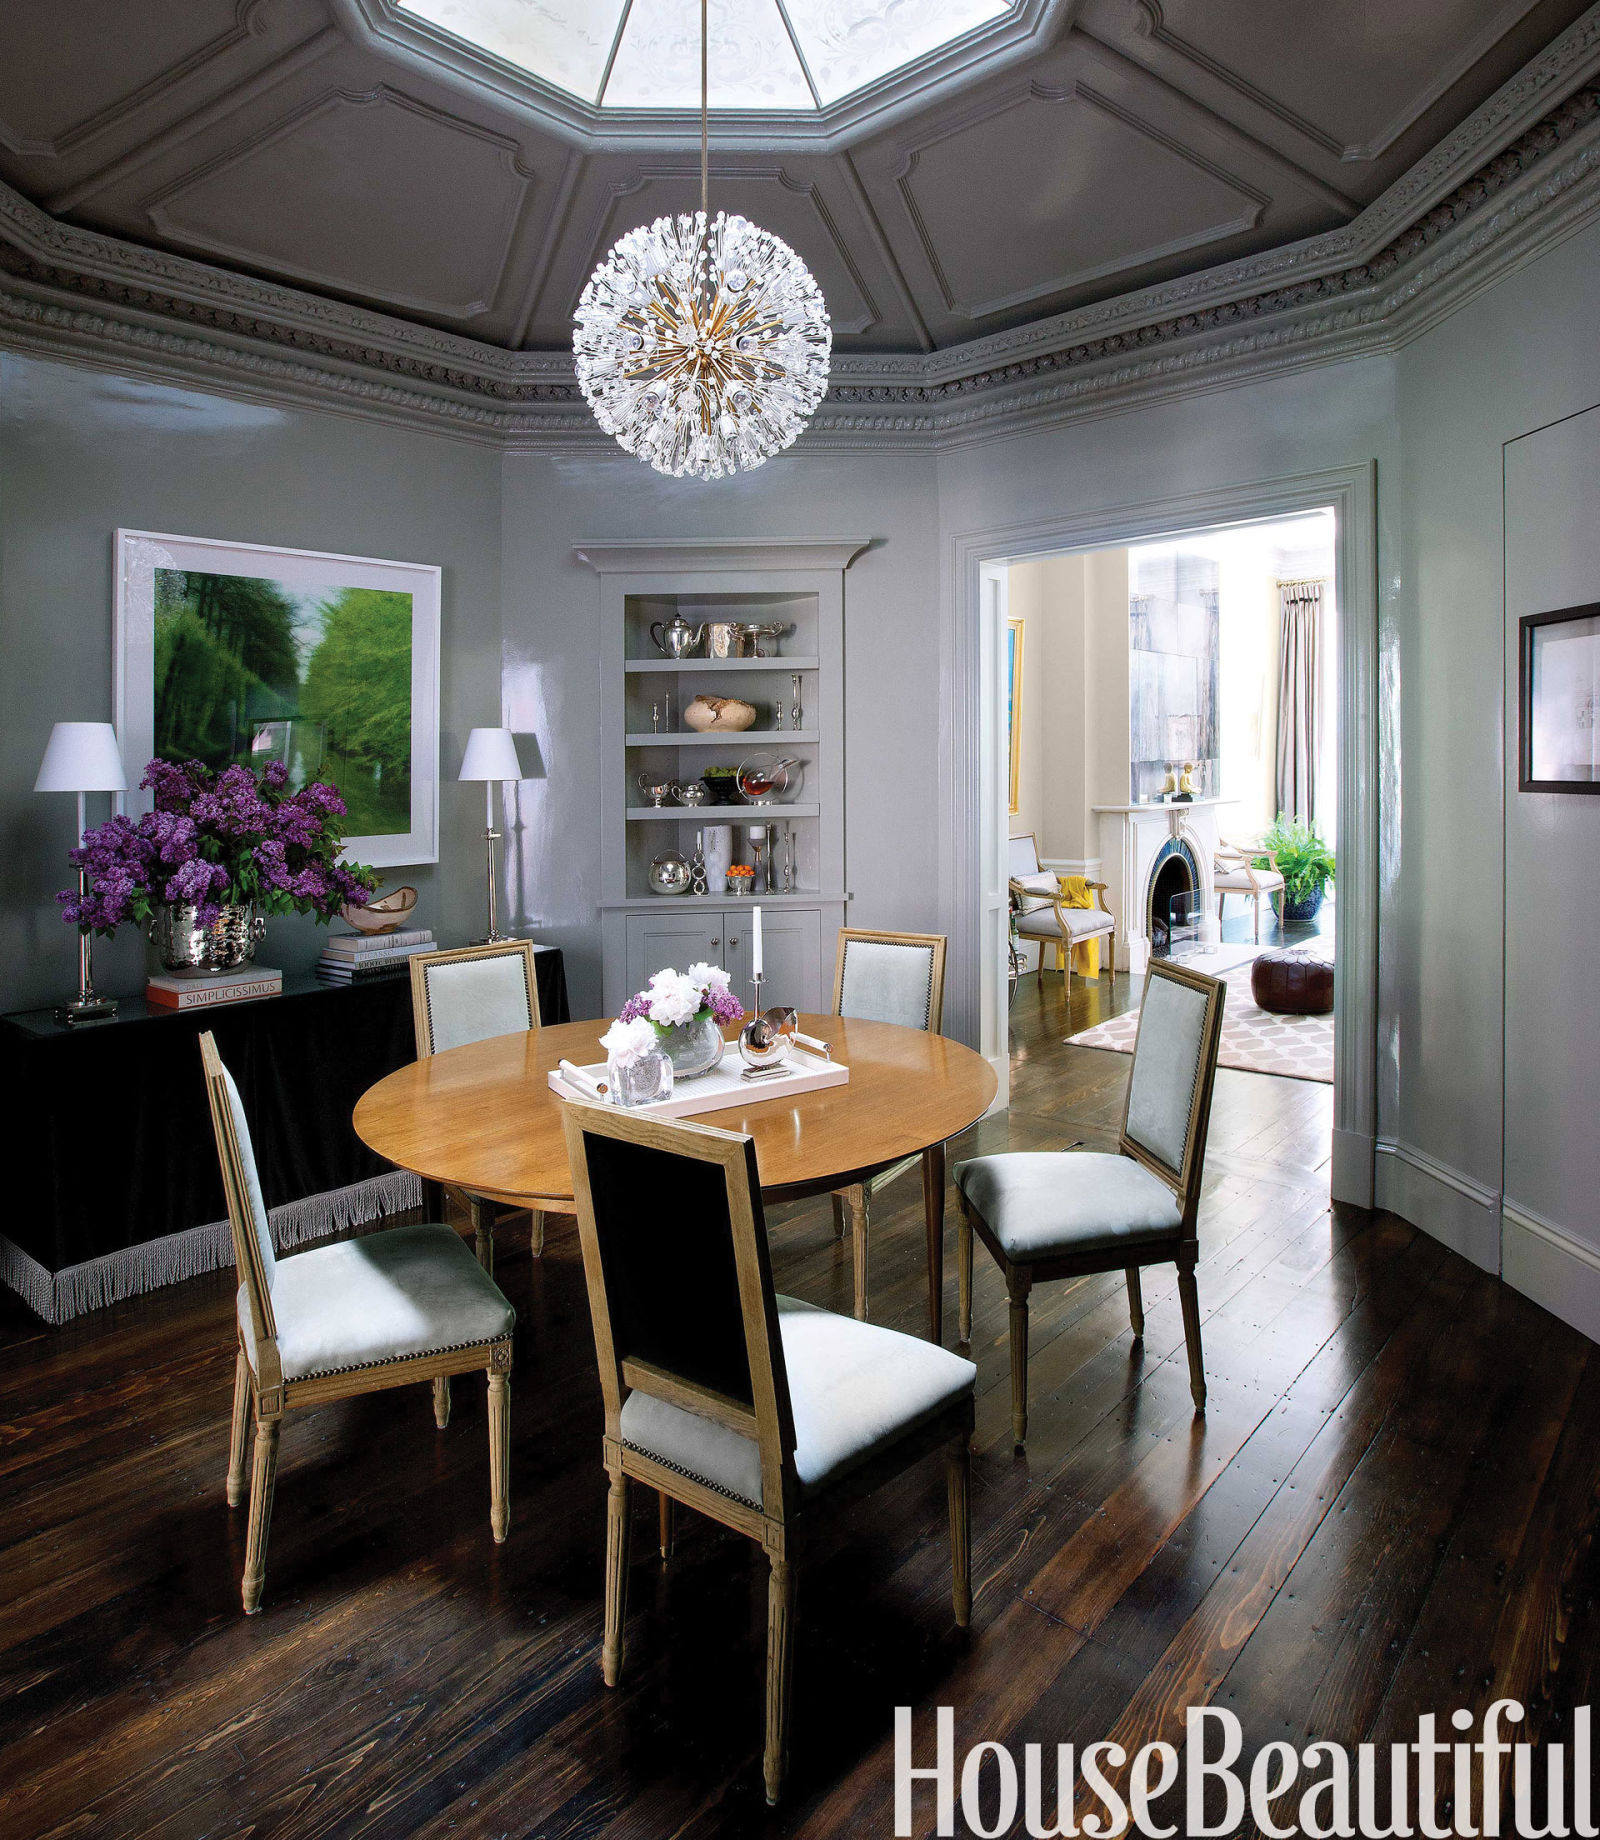 Dining Room Entry Designs Nina Farmer Interview Nina Farmer Interior Design